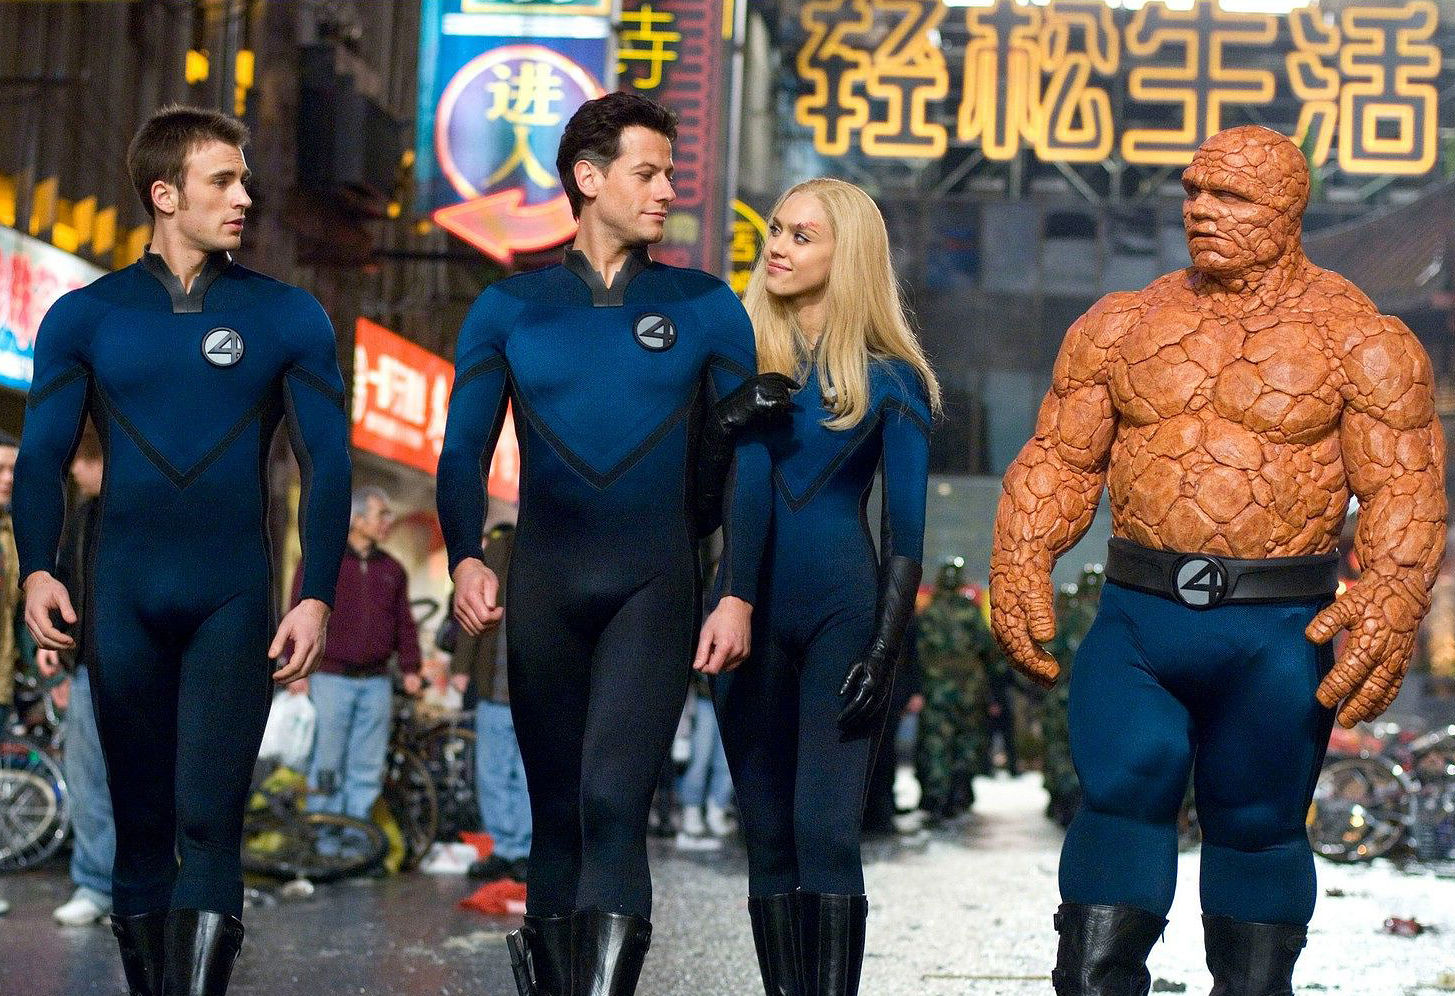 Johnny Storm/The Human Torch (Chris Evans), Reed Richards/Mr Fantastic (Ioan Gruffudd), Susan Storm/Invisible Girl (Jessica Alba), Ben Grimm/The Thing (Michael Chiklis) in Fantastic Four: Rise of the Silver Surfer (2007)